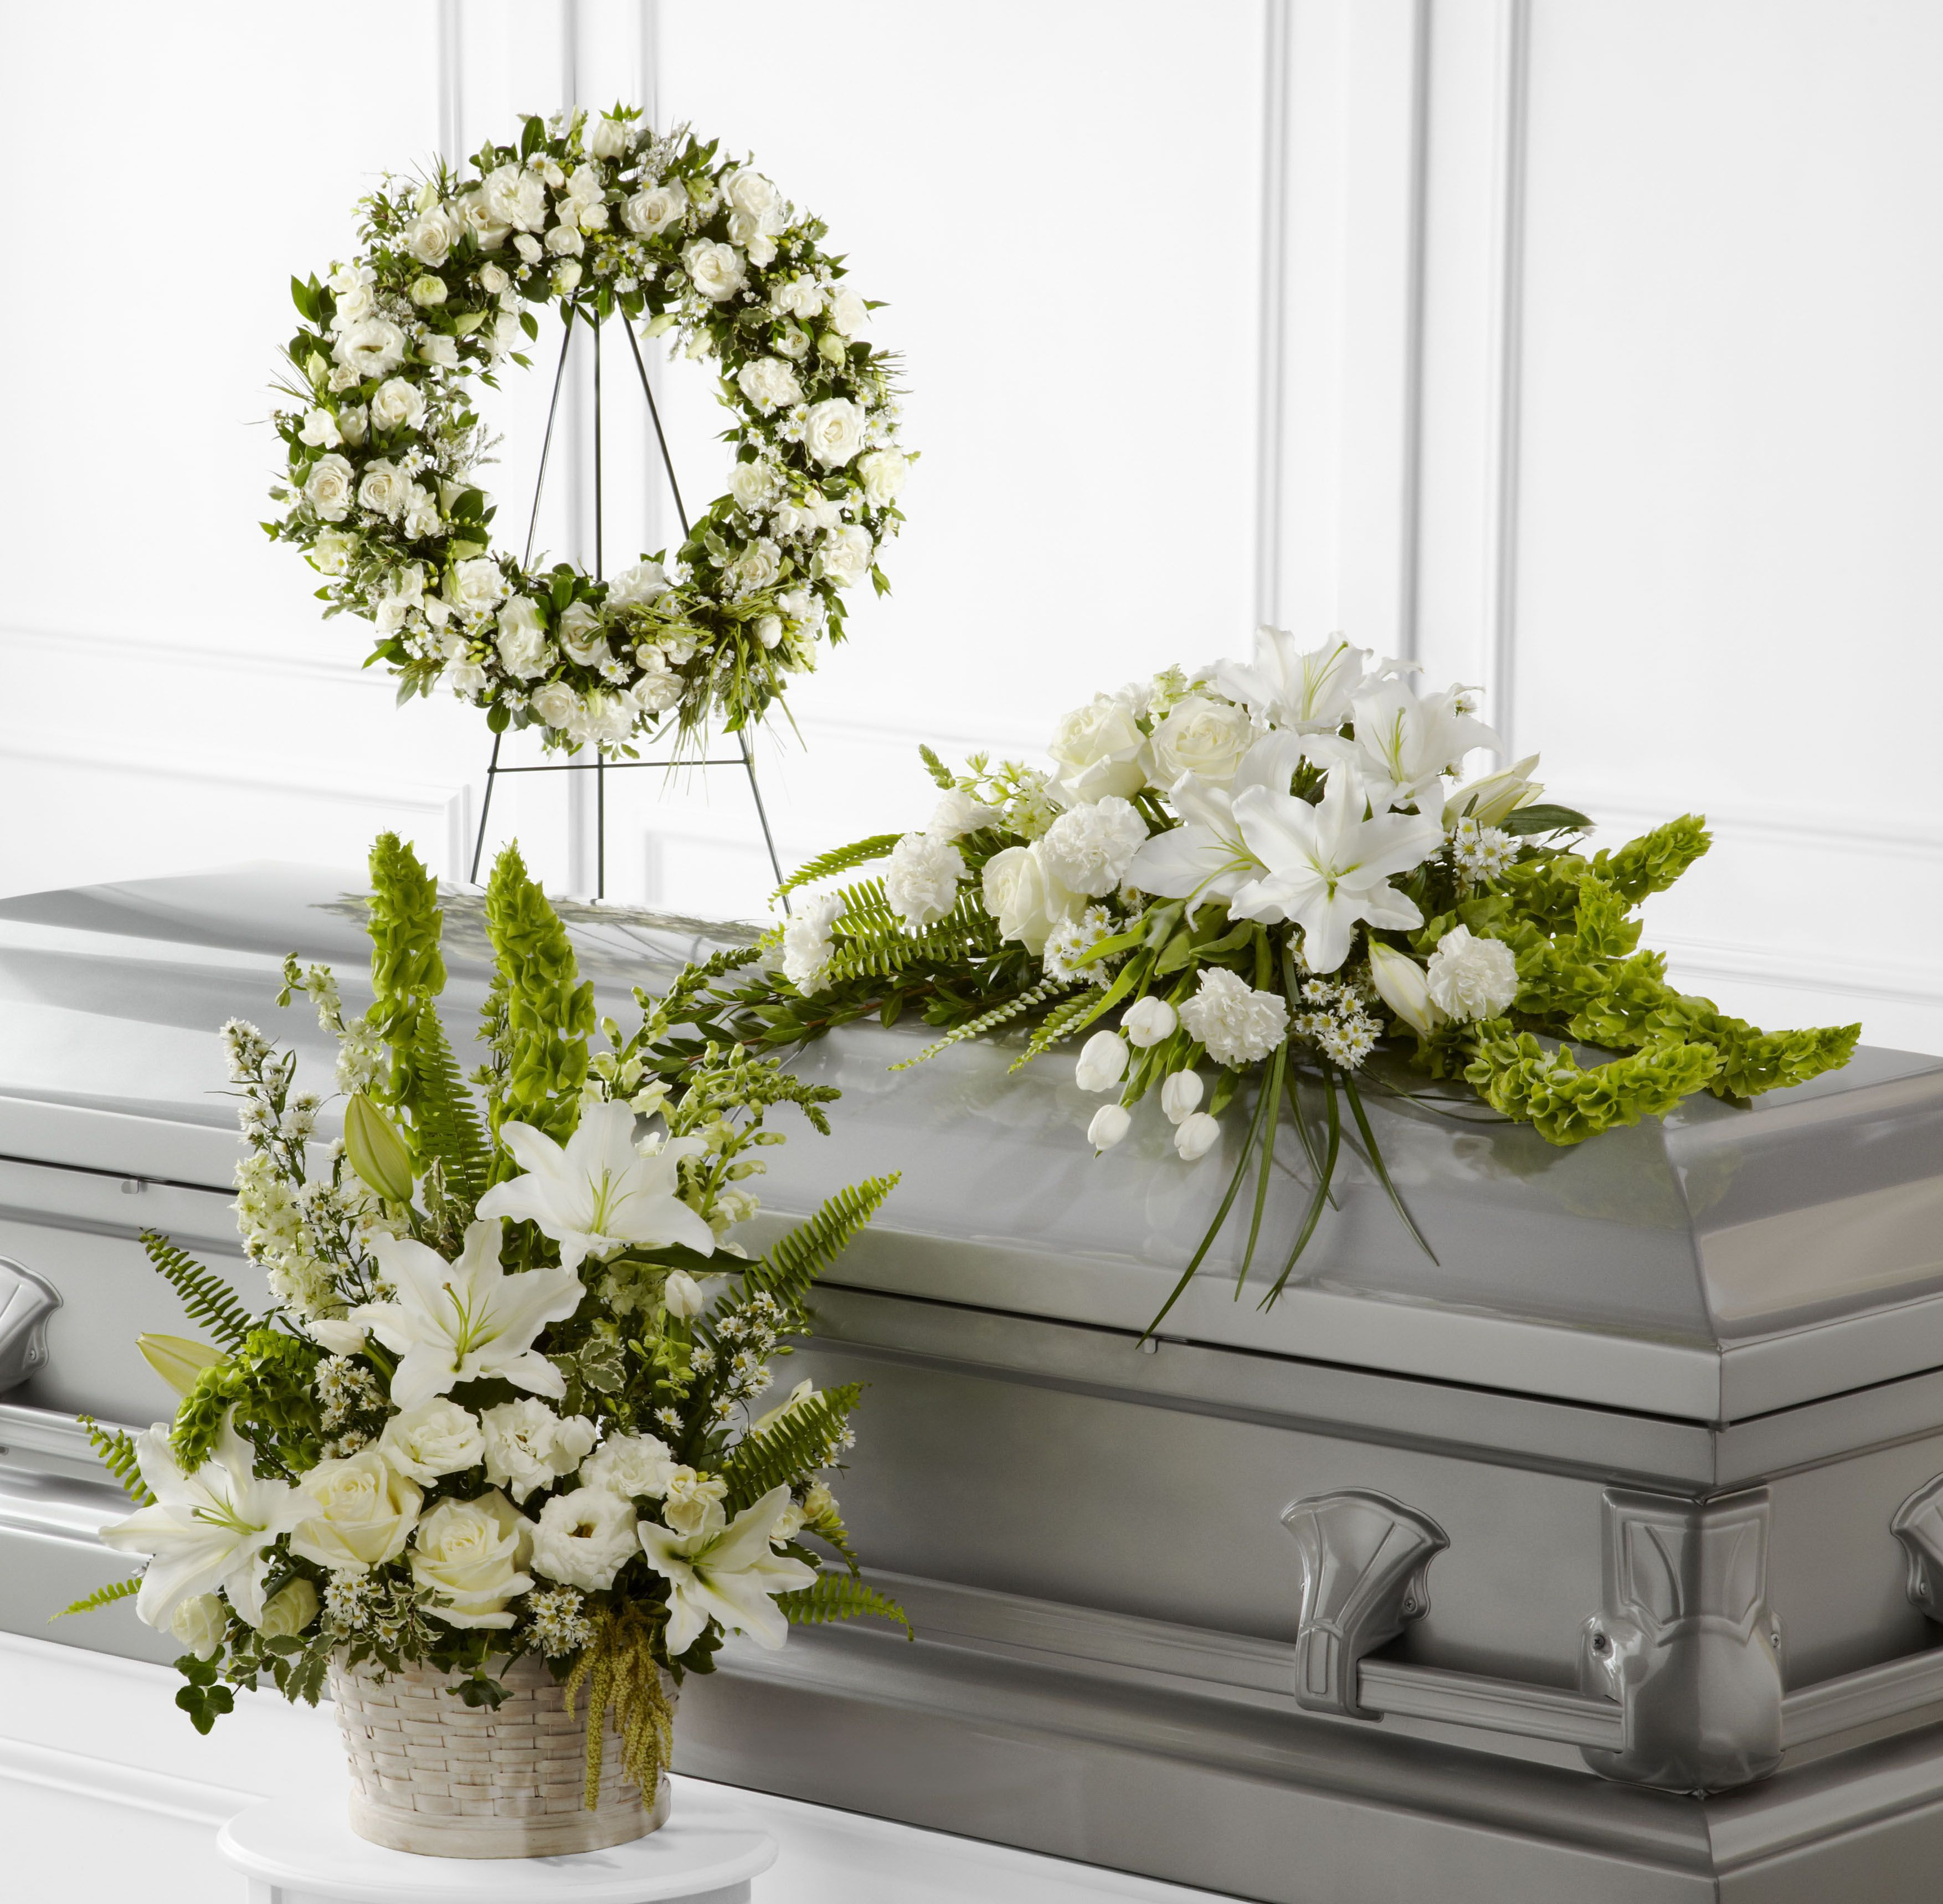 Funeral Flowers Spray Funeral Packages Looking For Multiple Items